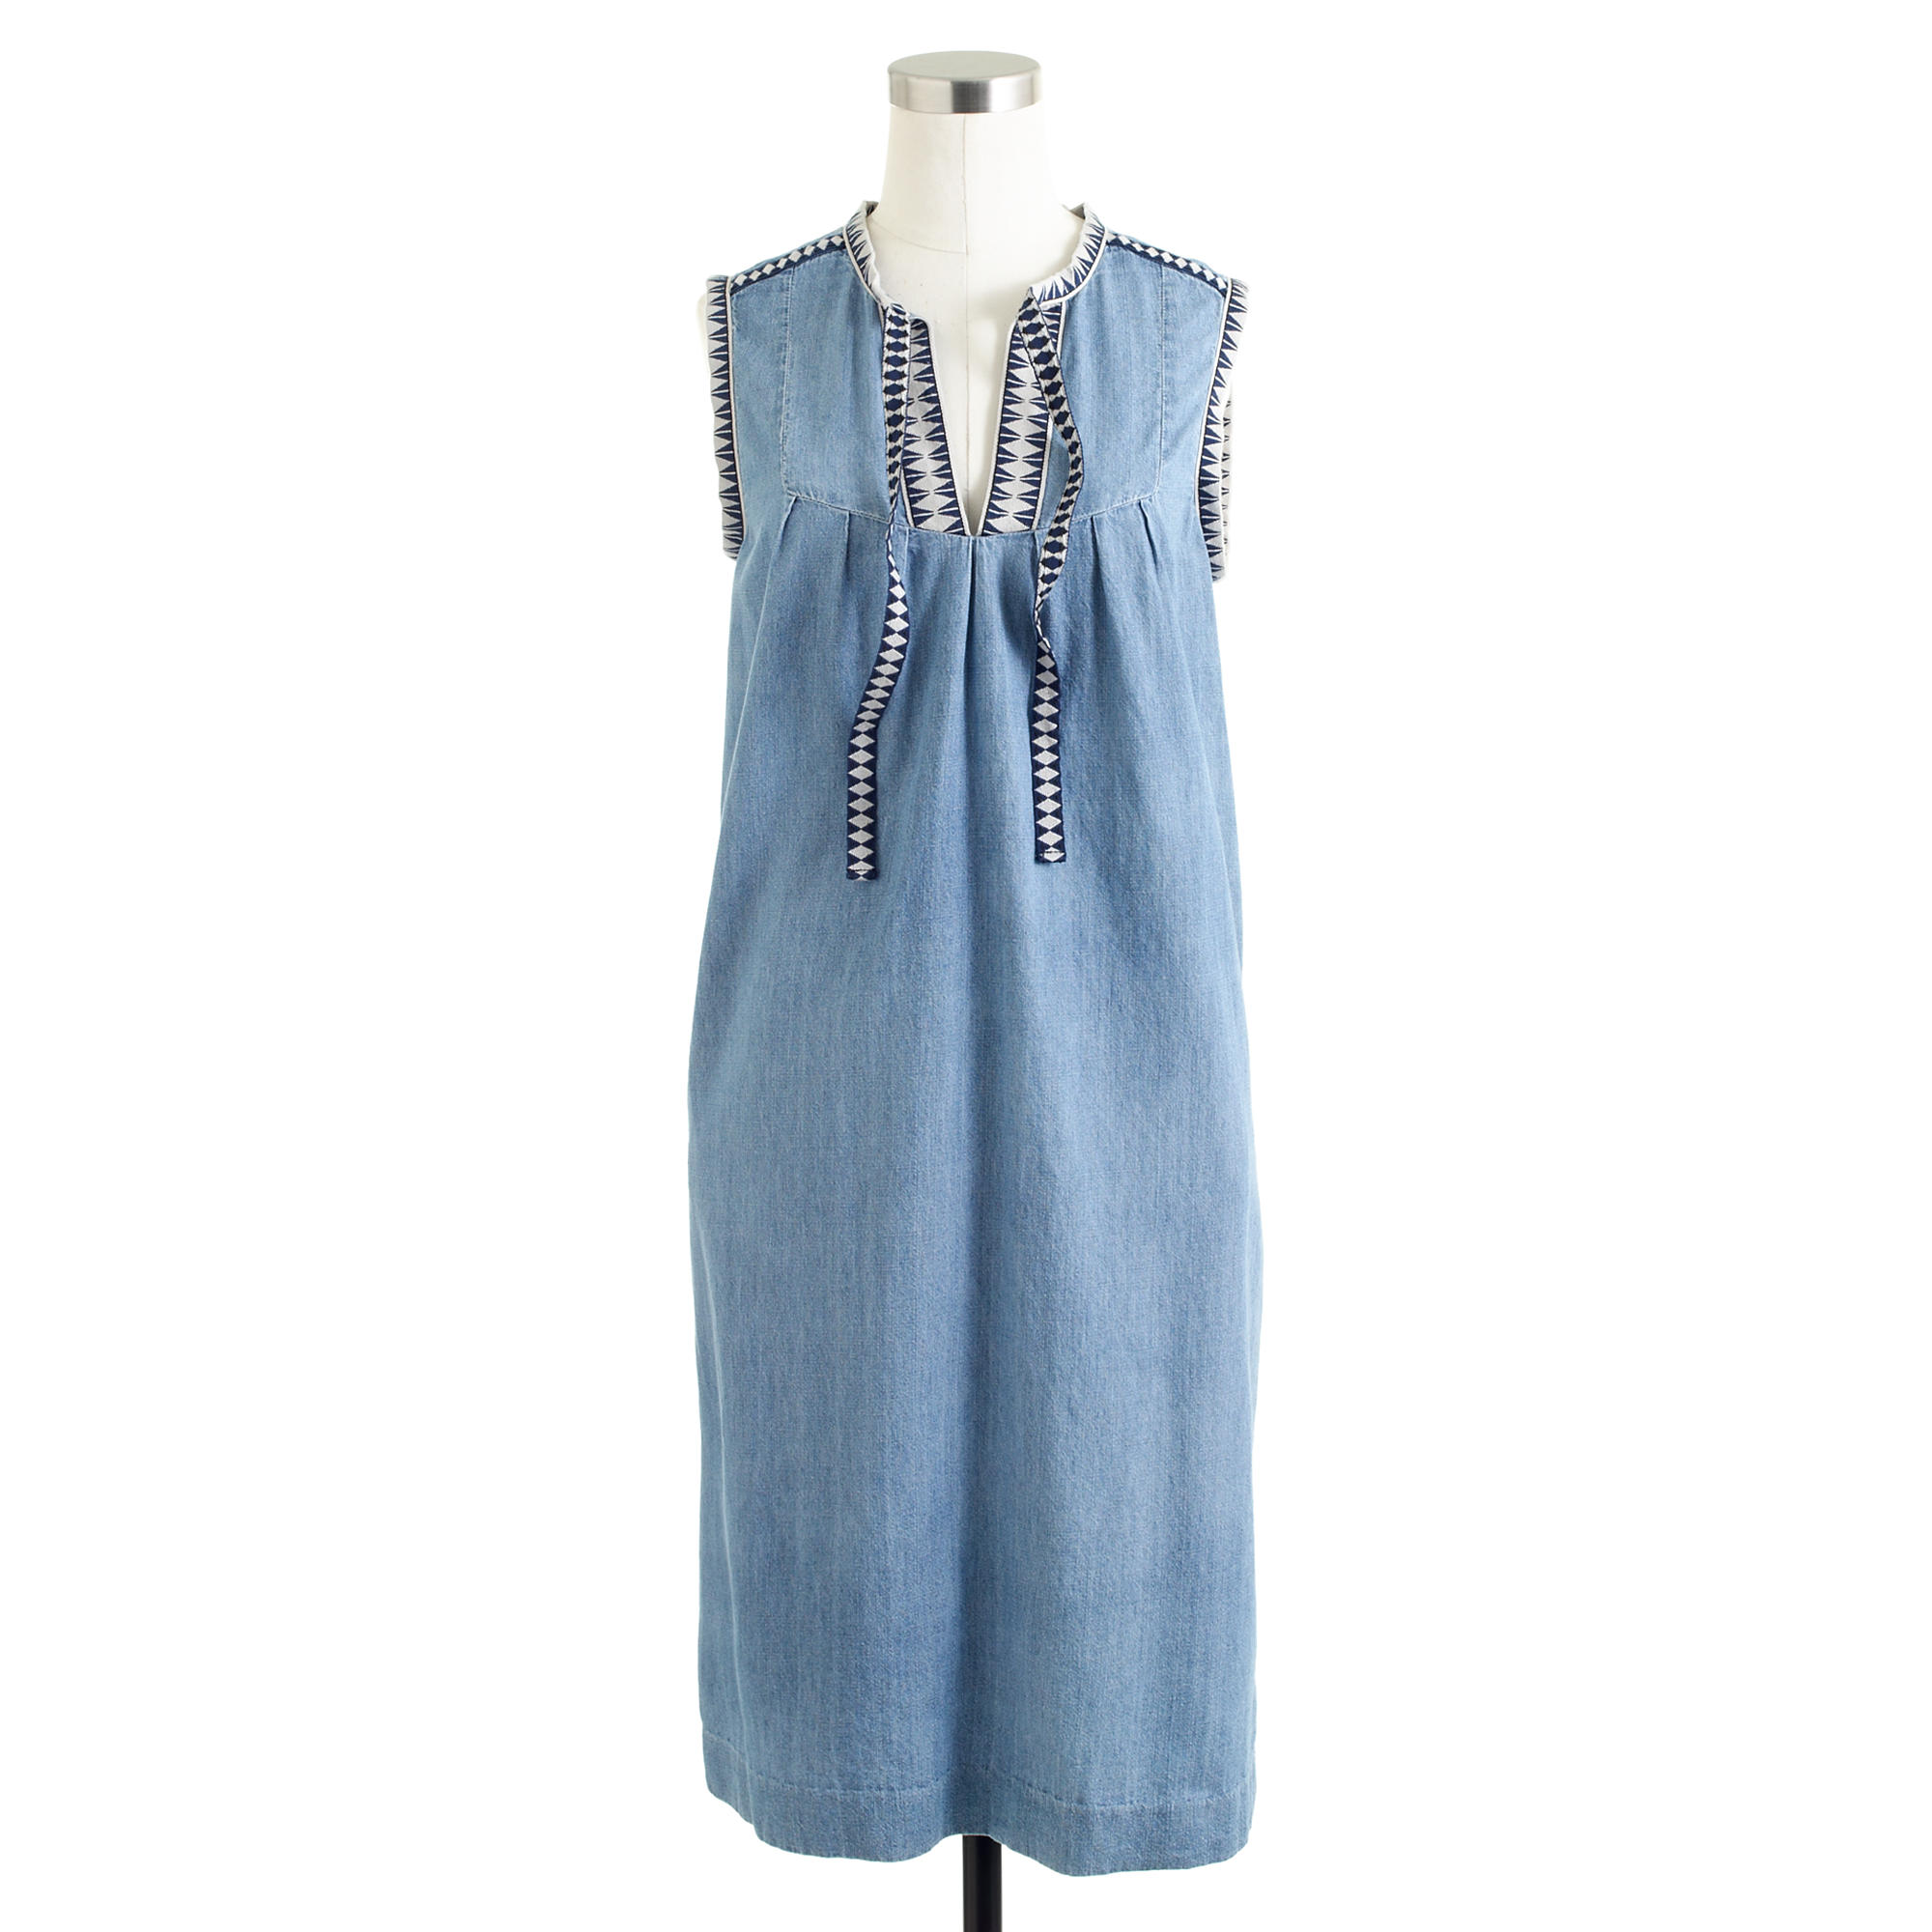 Washed chambray dress j crew for Jcrew com